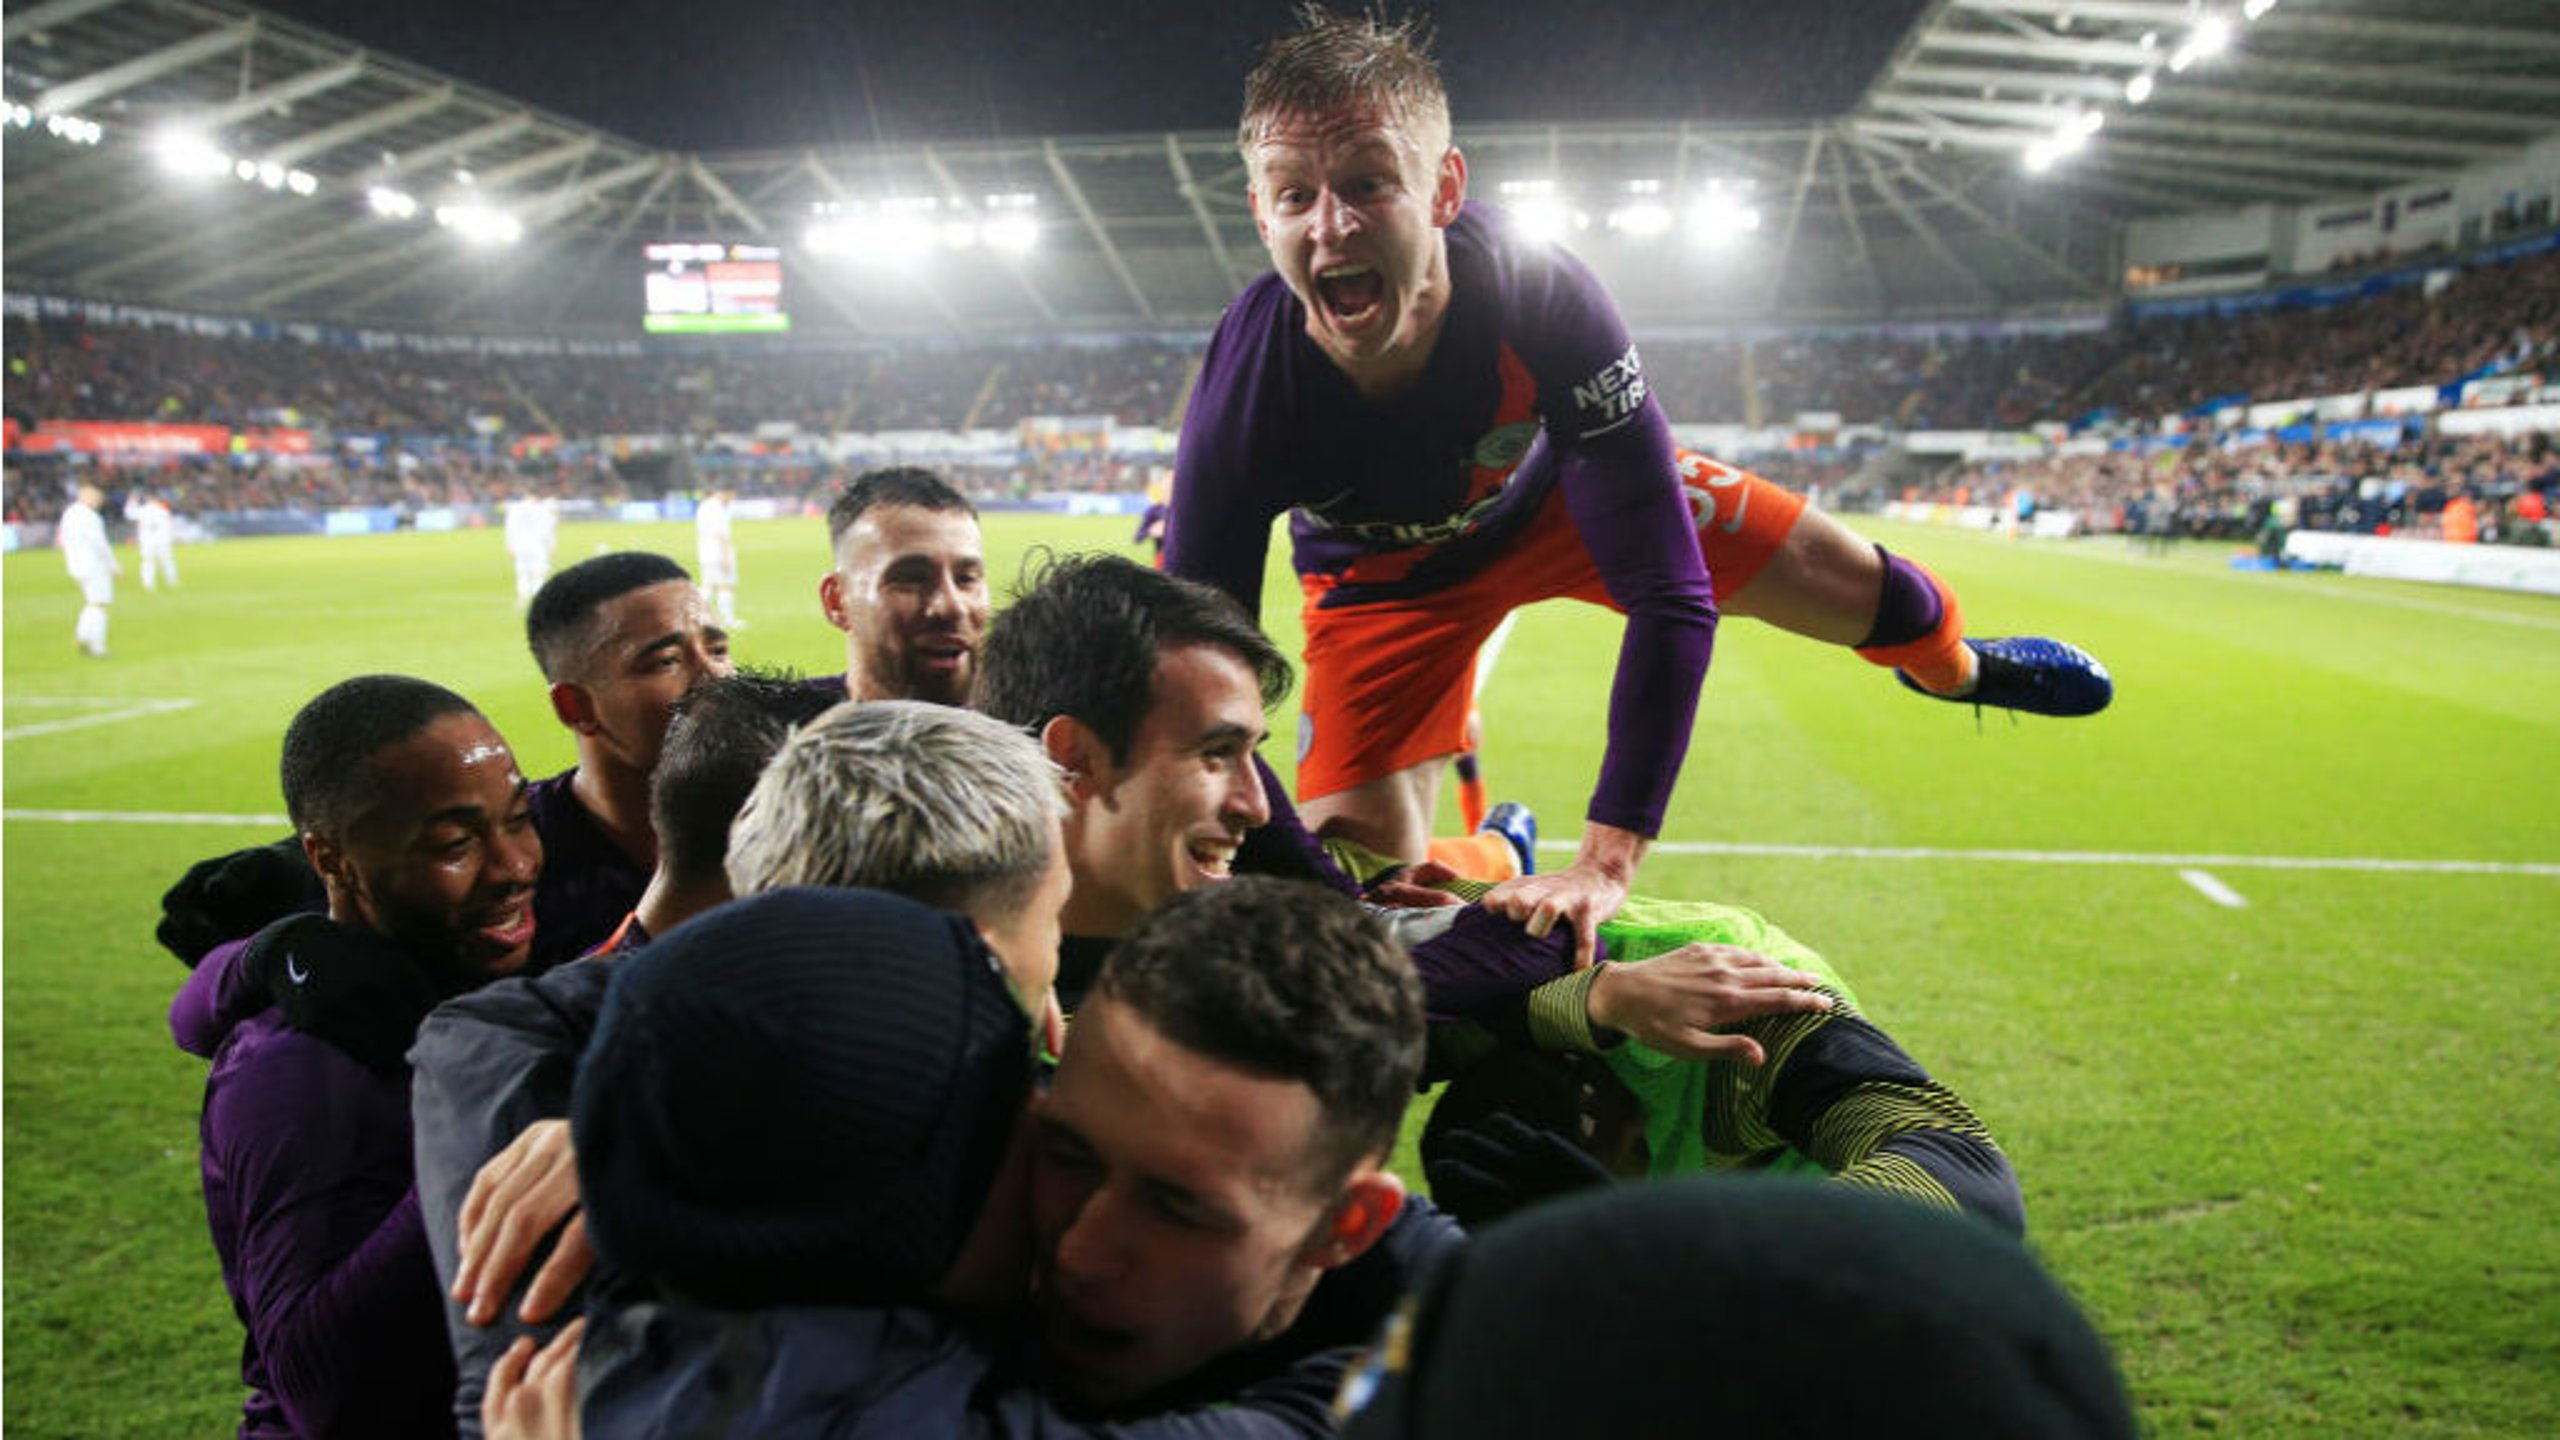 City's stunning late show keeps FA Cup dream alive